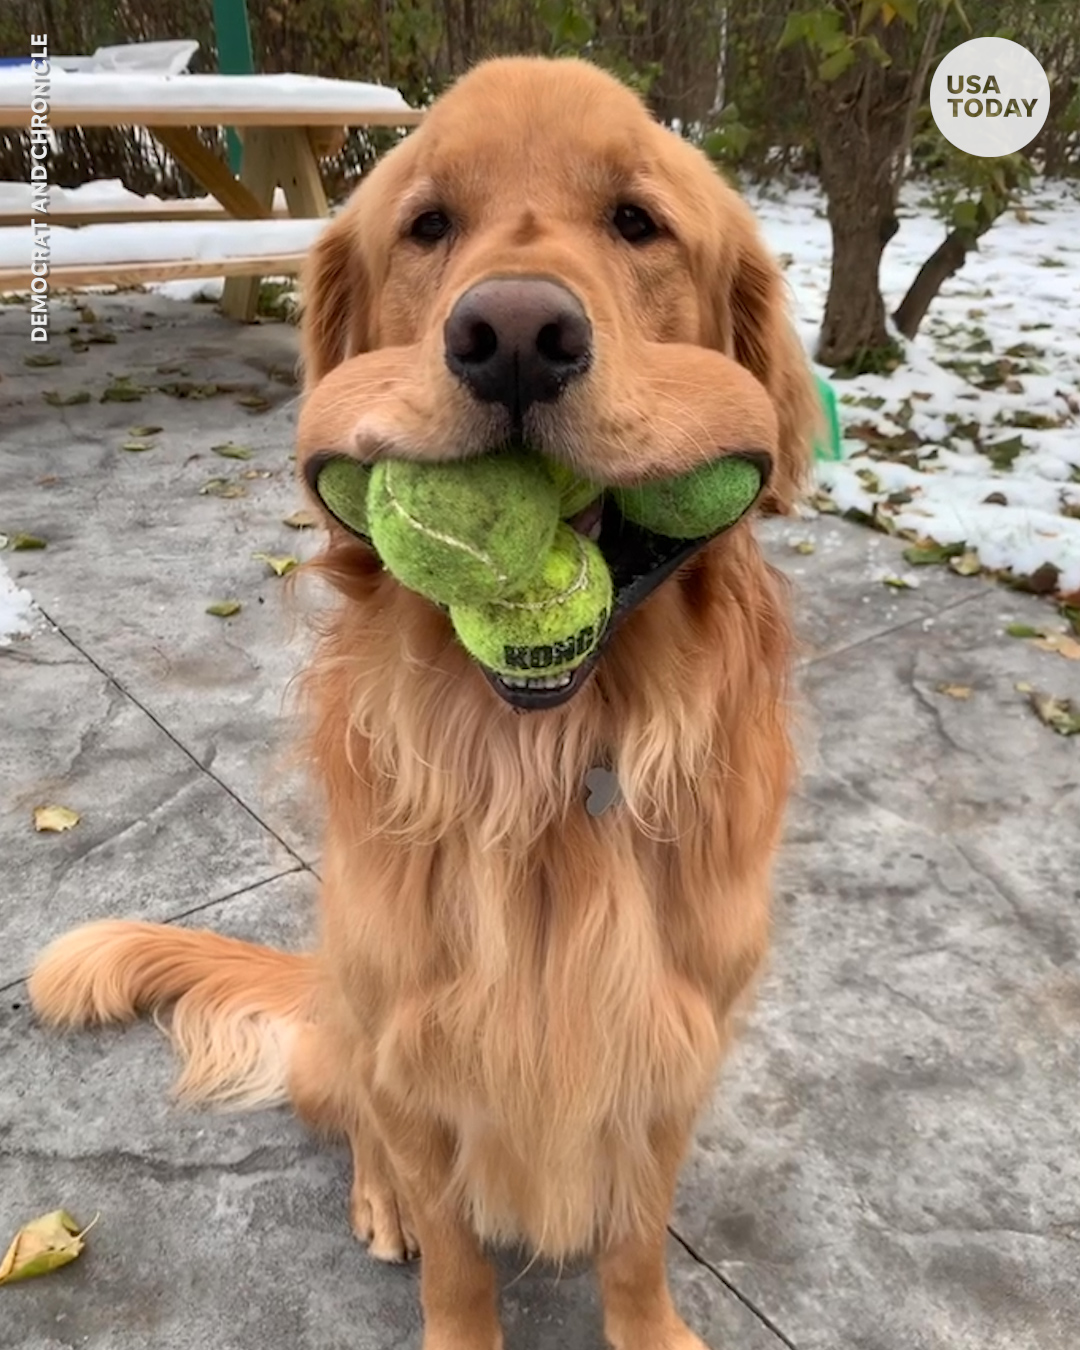 🎾 🎾 🎾 🎾 🎾 🎾 🎾 https://t.co/L3DSvVaSI8